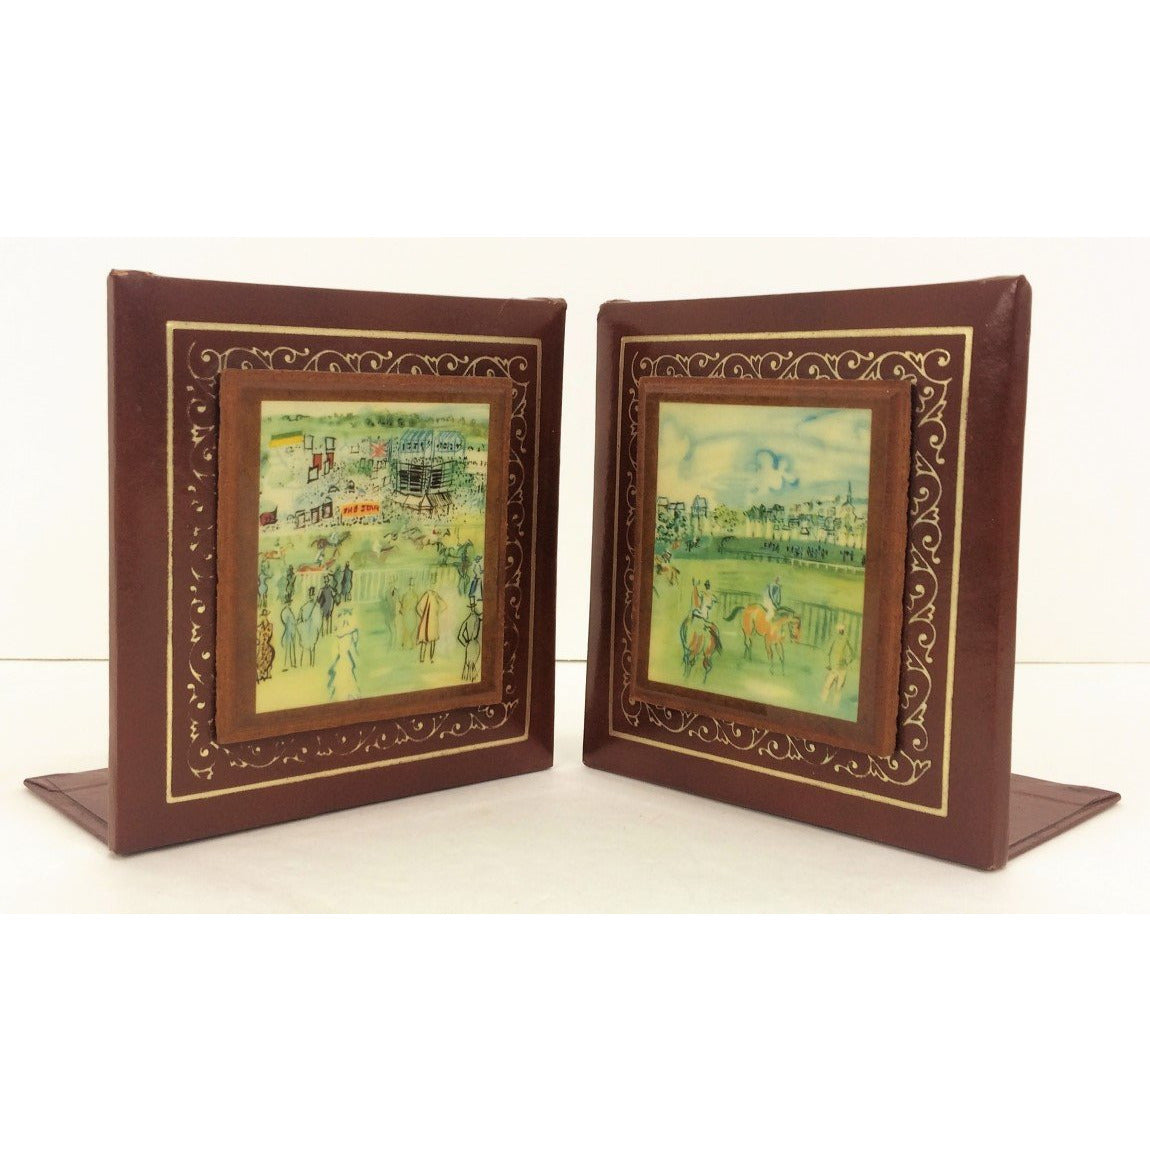 Pair of Dufy Racecourse Leather Bookends